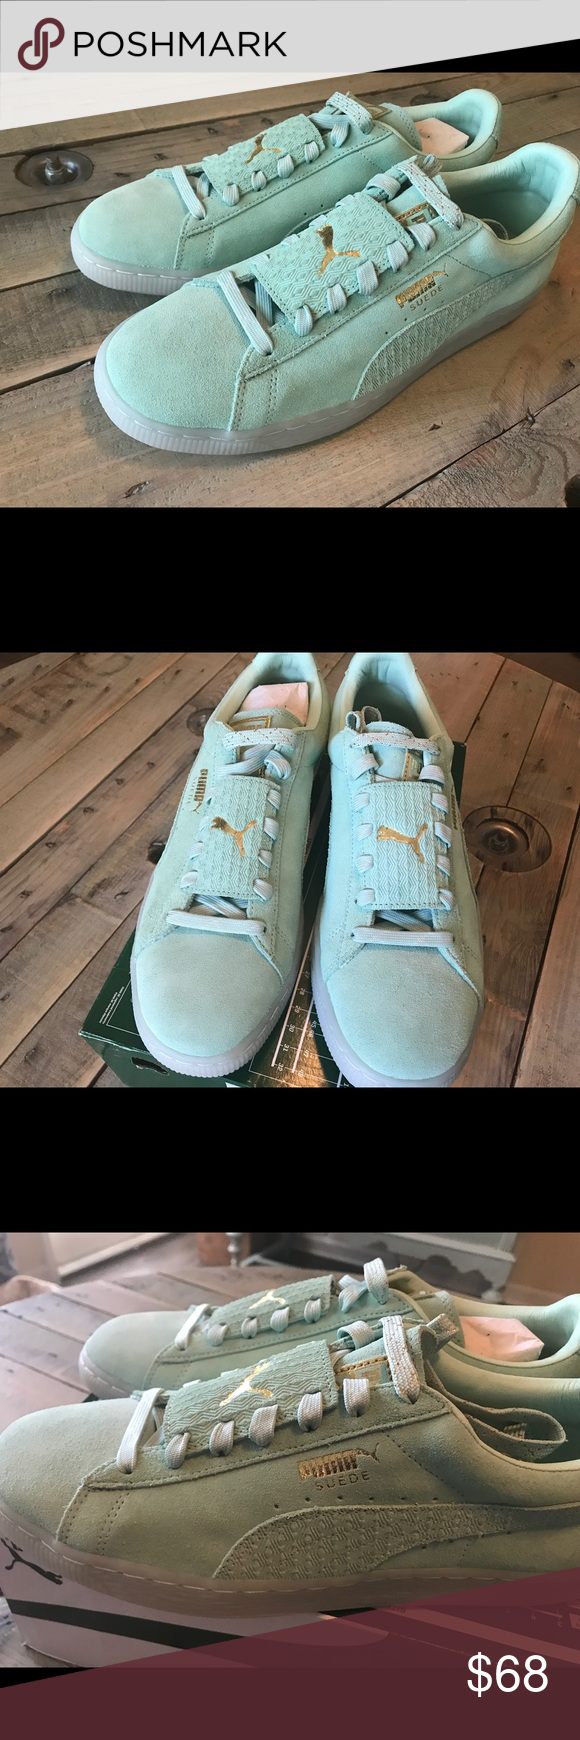 0413156f4534 Puma Suede epic remix Men s Sneakers Sz 10 Brand New With box Never used  100% Authentic Puma Men s Puma Suede Epic Remix Size 10 Gossamer Green-Puma  white ...